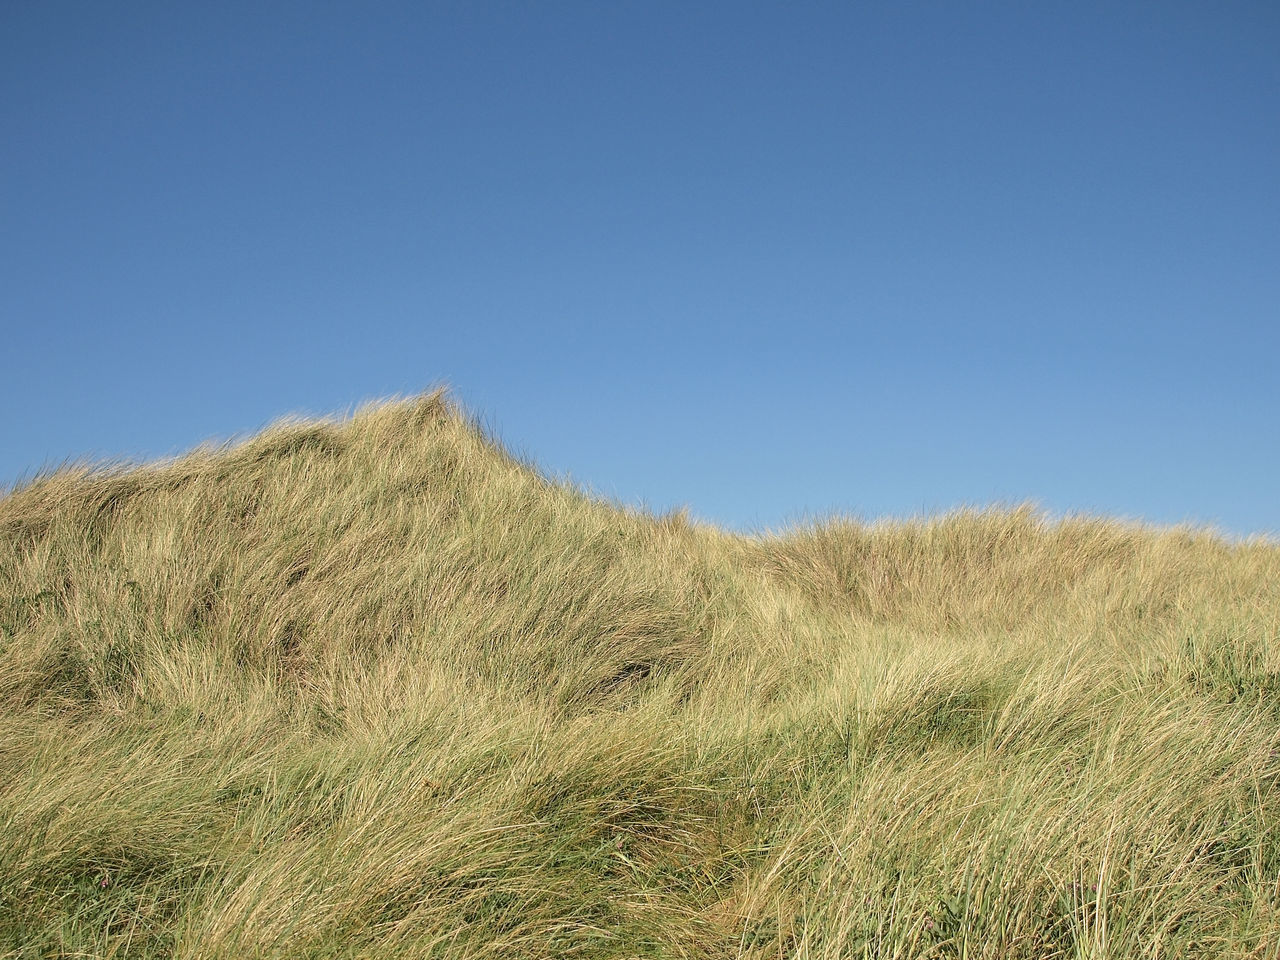 grass, clear sky, nature, growth, field, tranquil scene, day, outdoors, tranquility, beauty in nature, copy space, no people, marram grass, blue, landscape, scenics, plant, timothy grass, summer, agriculture, rural scene, sky, sand dune